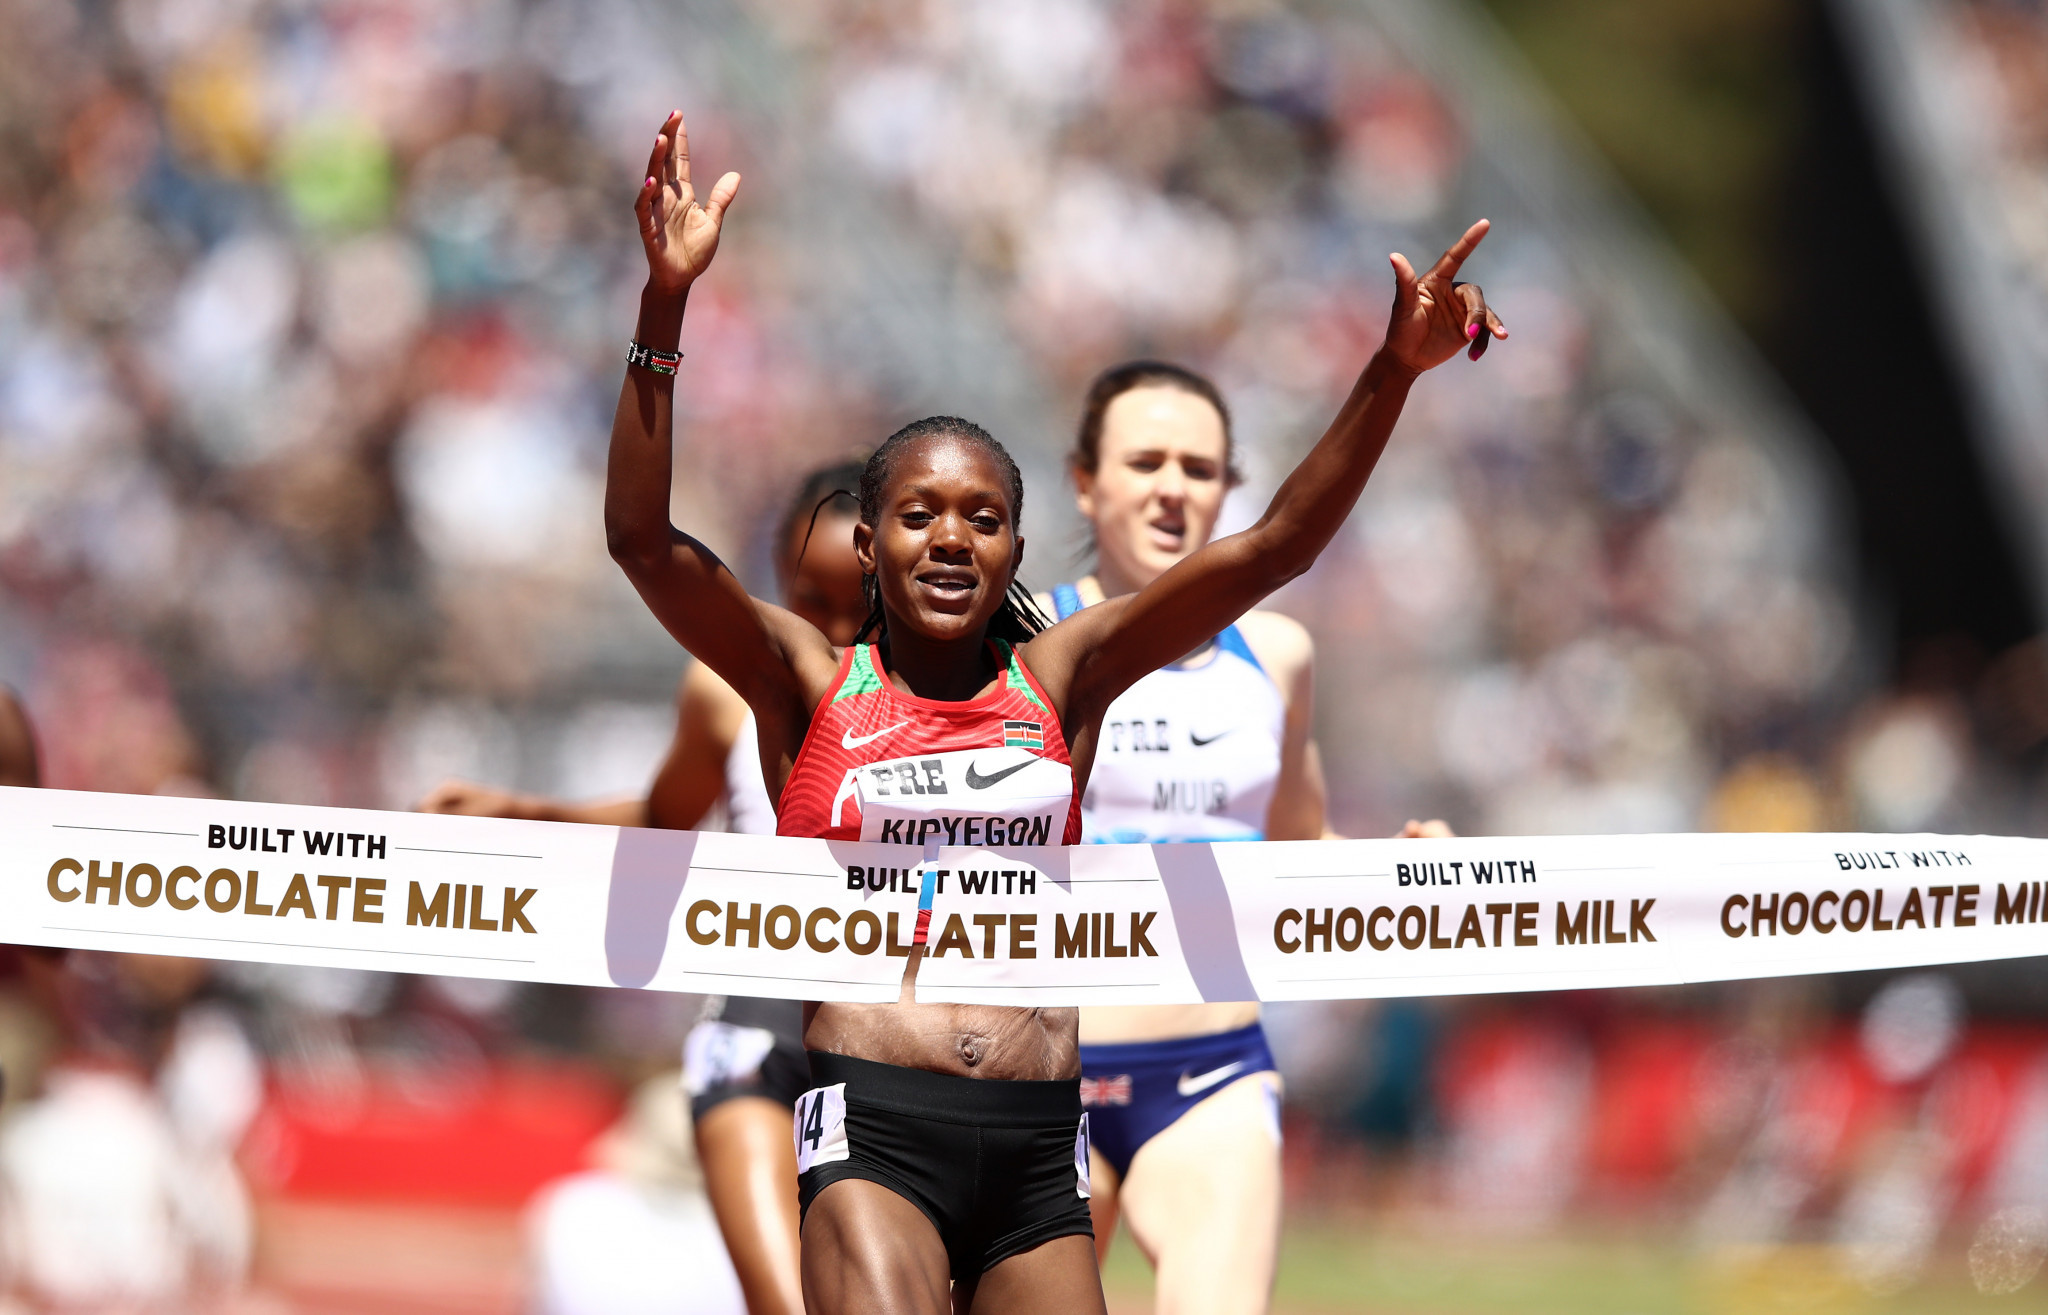 Kenya's Faith Kipyegon wins the 1500m at the IAAF Diamond League in Stanford, beating Britain's Laura Muir ©Getty Images